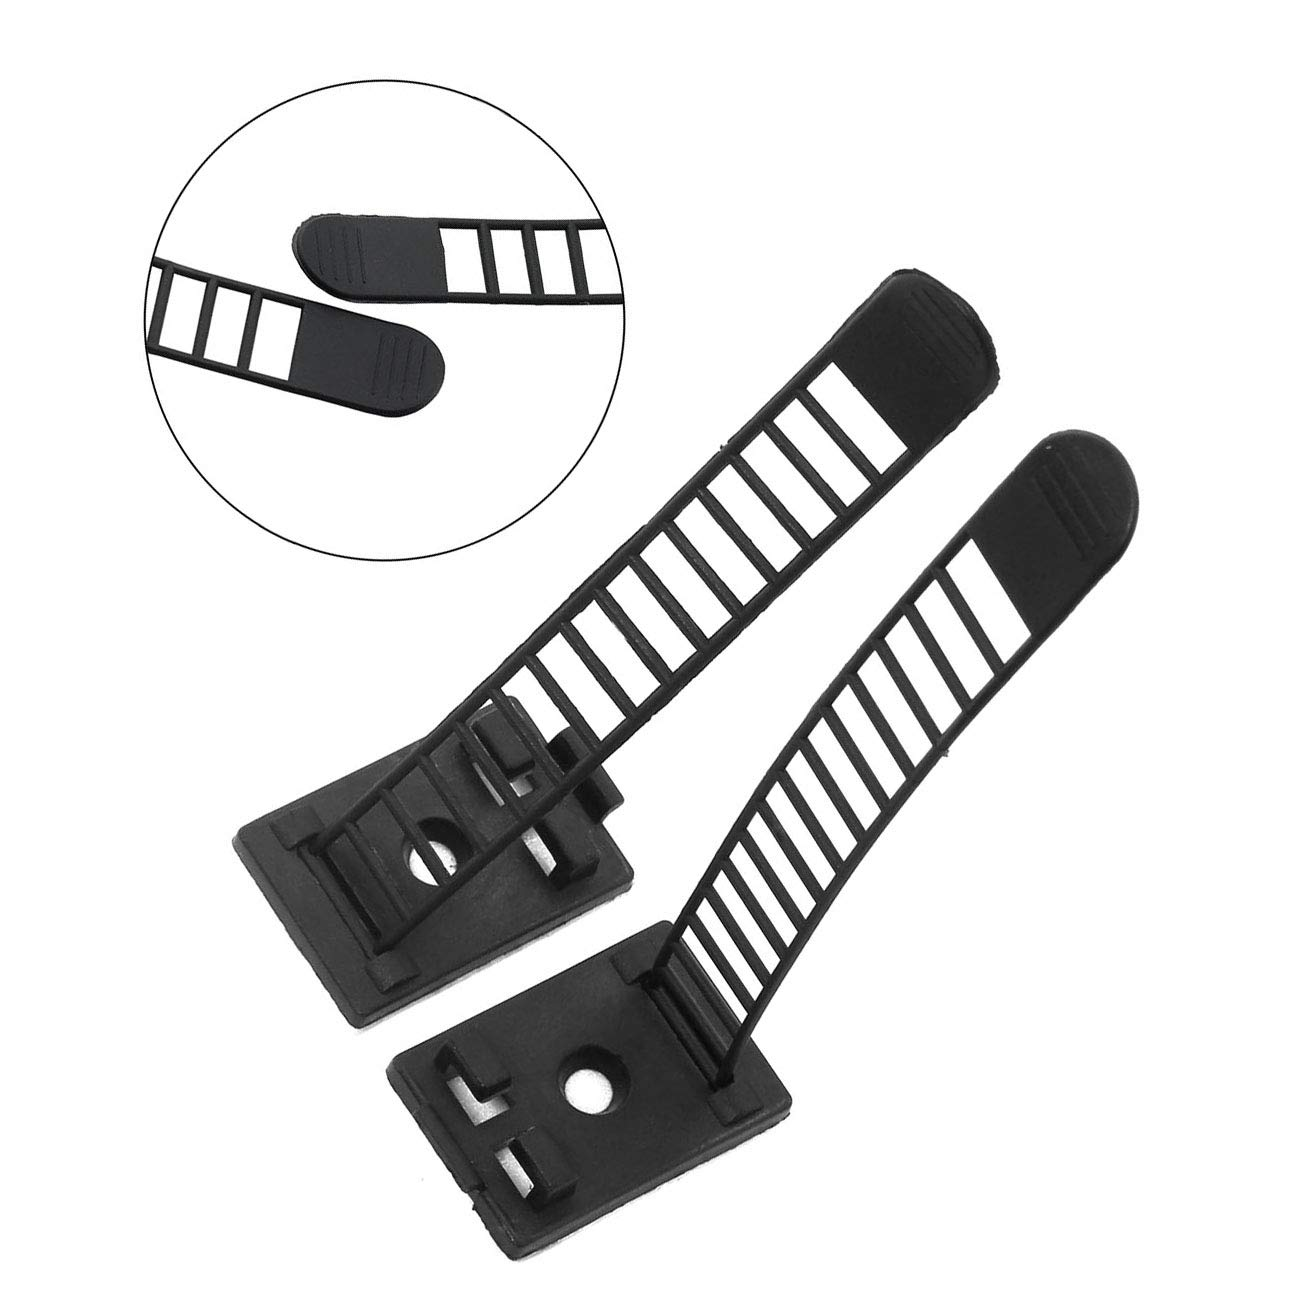 100pcs 91mm Adjustable Self Adhesive Cable Clips Wire Organizer with Optional Screw Mount for Electric Wiring Accessories Cable Clamp Clips Fixed Fasten Cable Tie Black by Magic&Shell (Image #2)